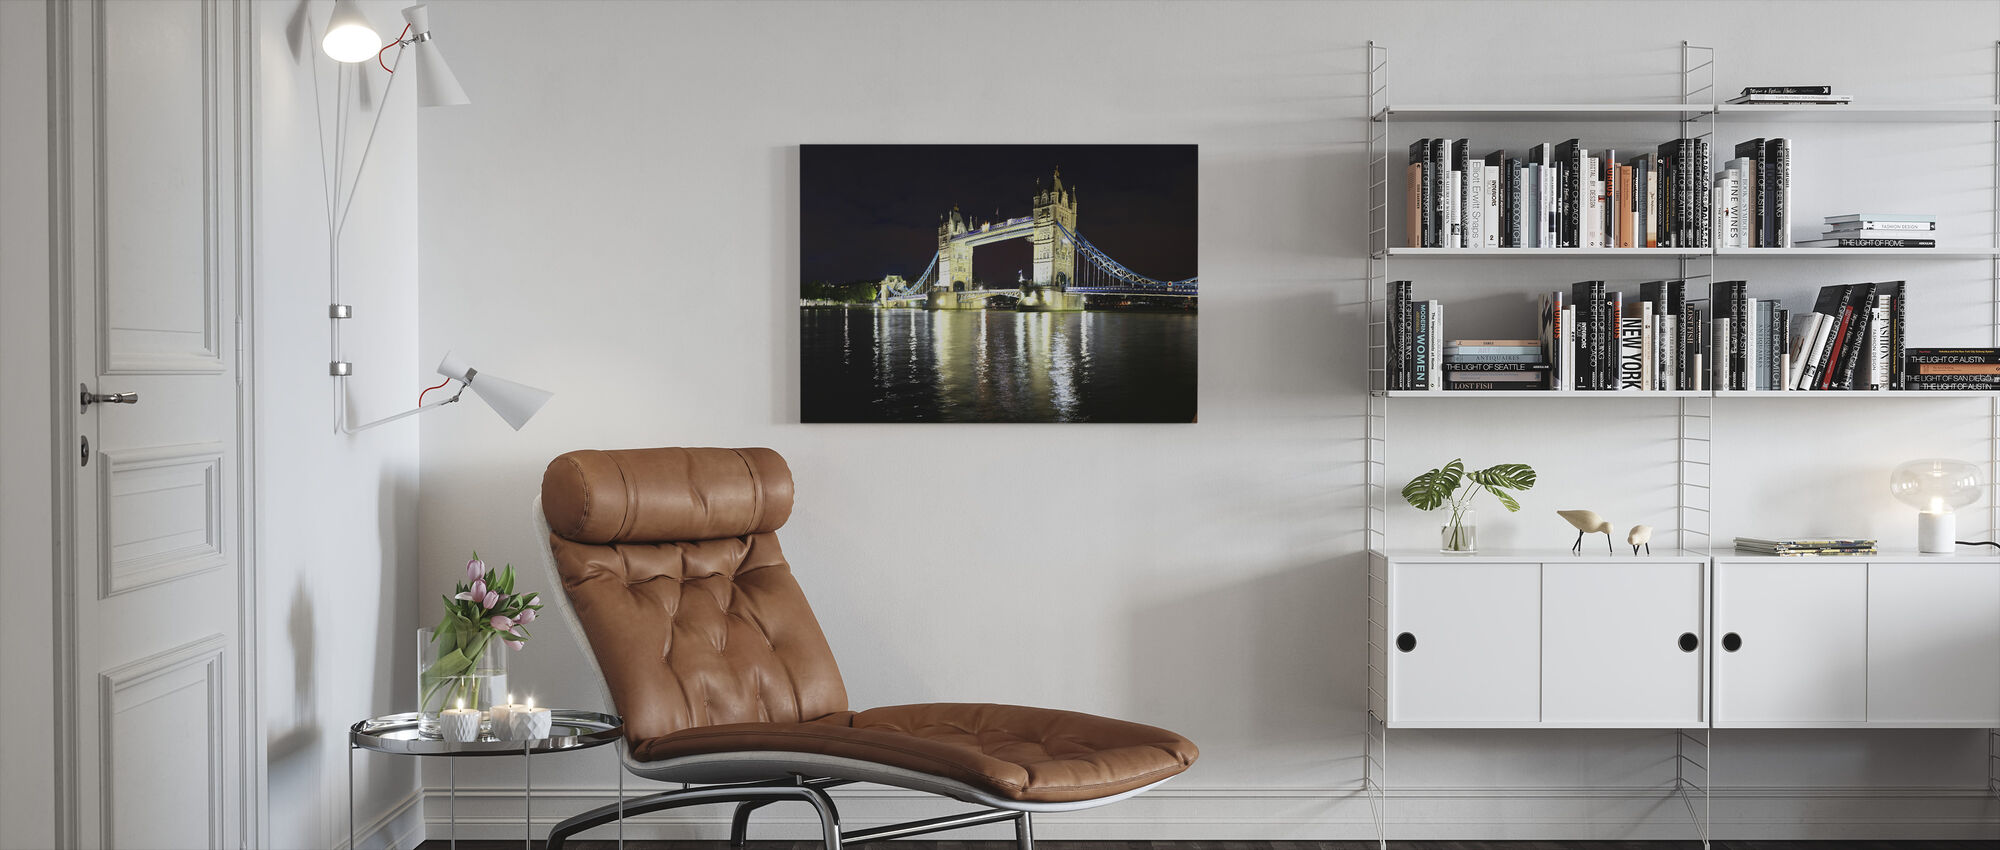 London Tower Bridge at Night - Canvas print - Living Room